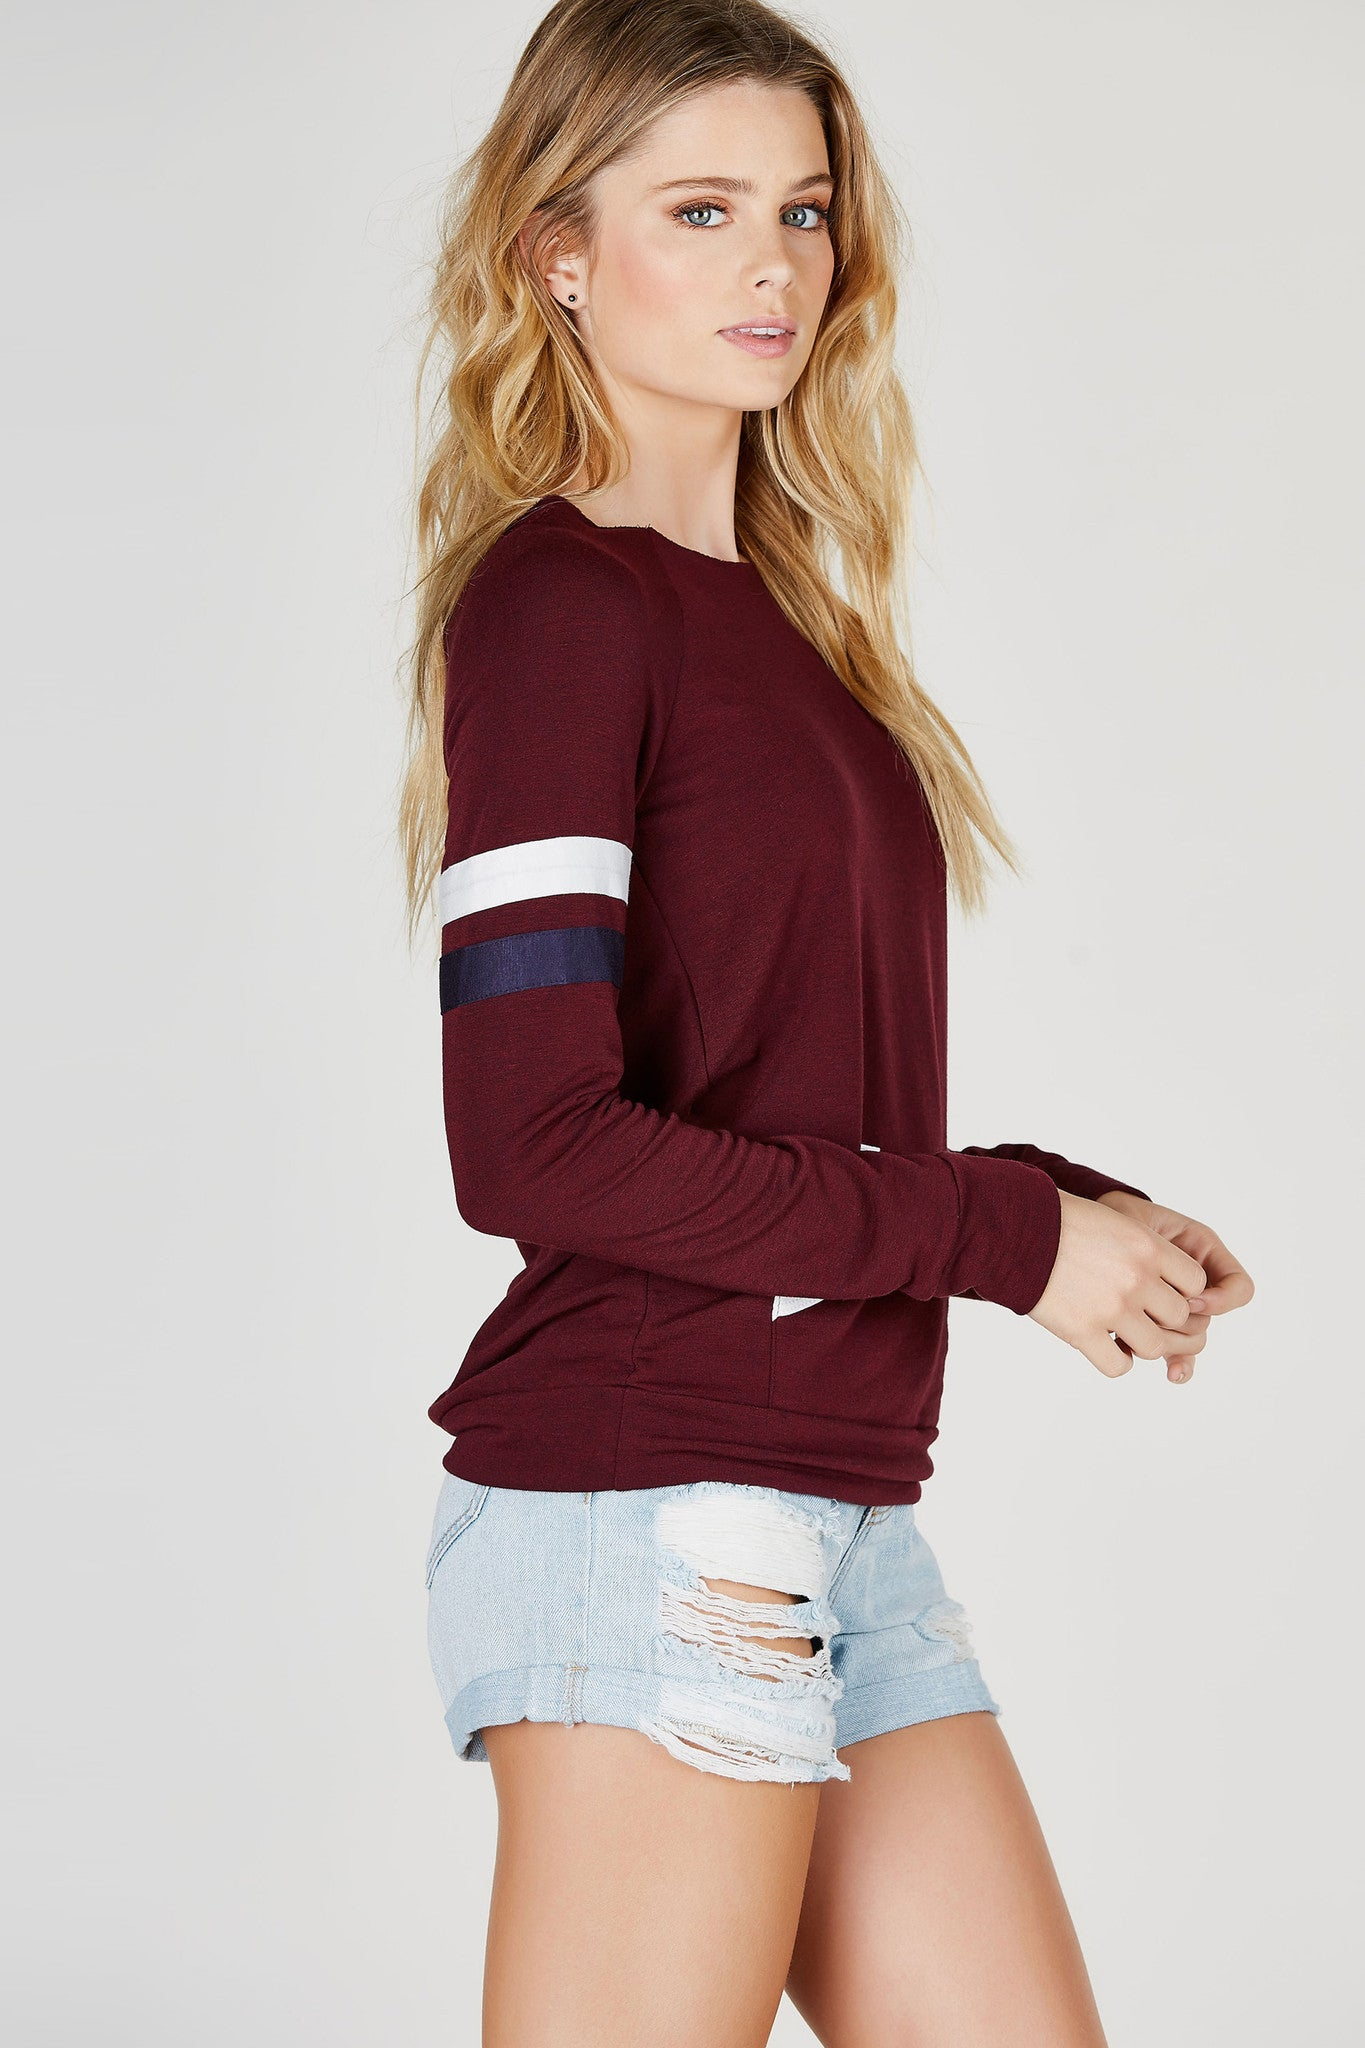 A soft long sleeve sweatshirt with contrast stripes for a casual, athletic vibe. Features a raw hem neckline with a center pocket. Slouchy fit great to style with denim cut offs and sneakers for a laid back look.